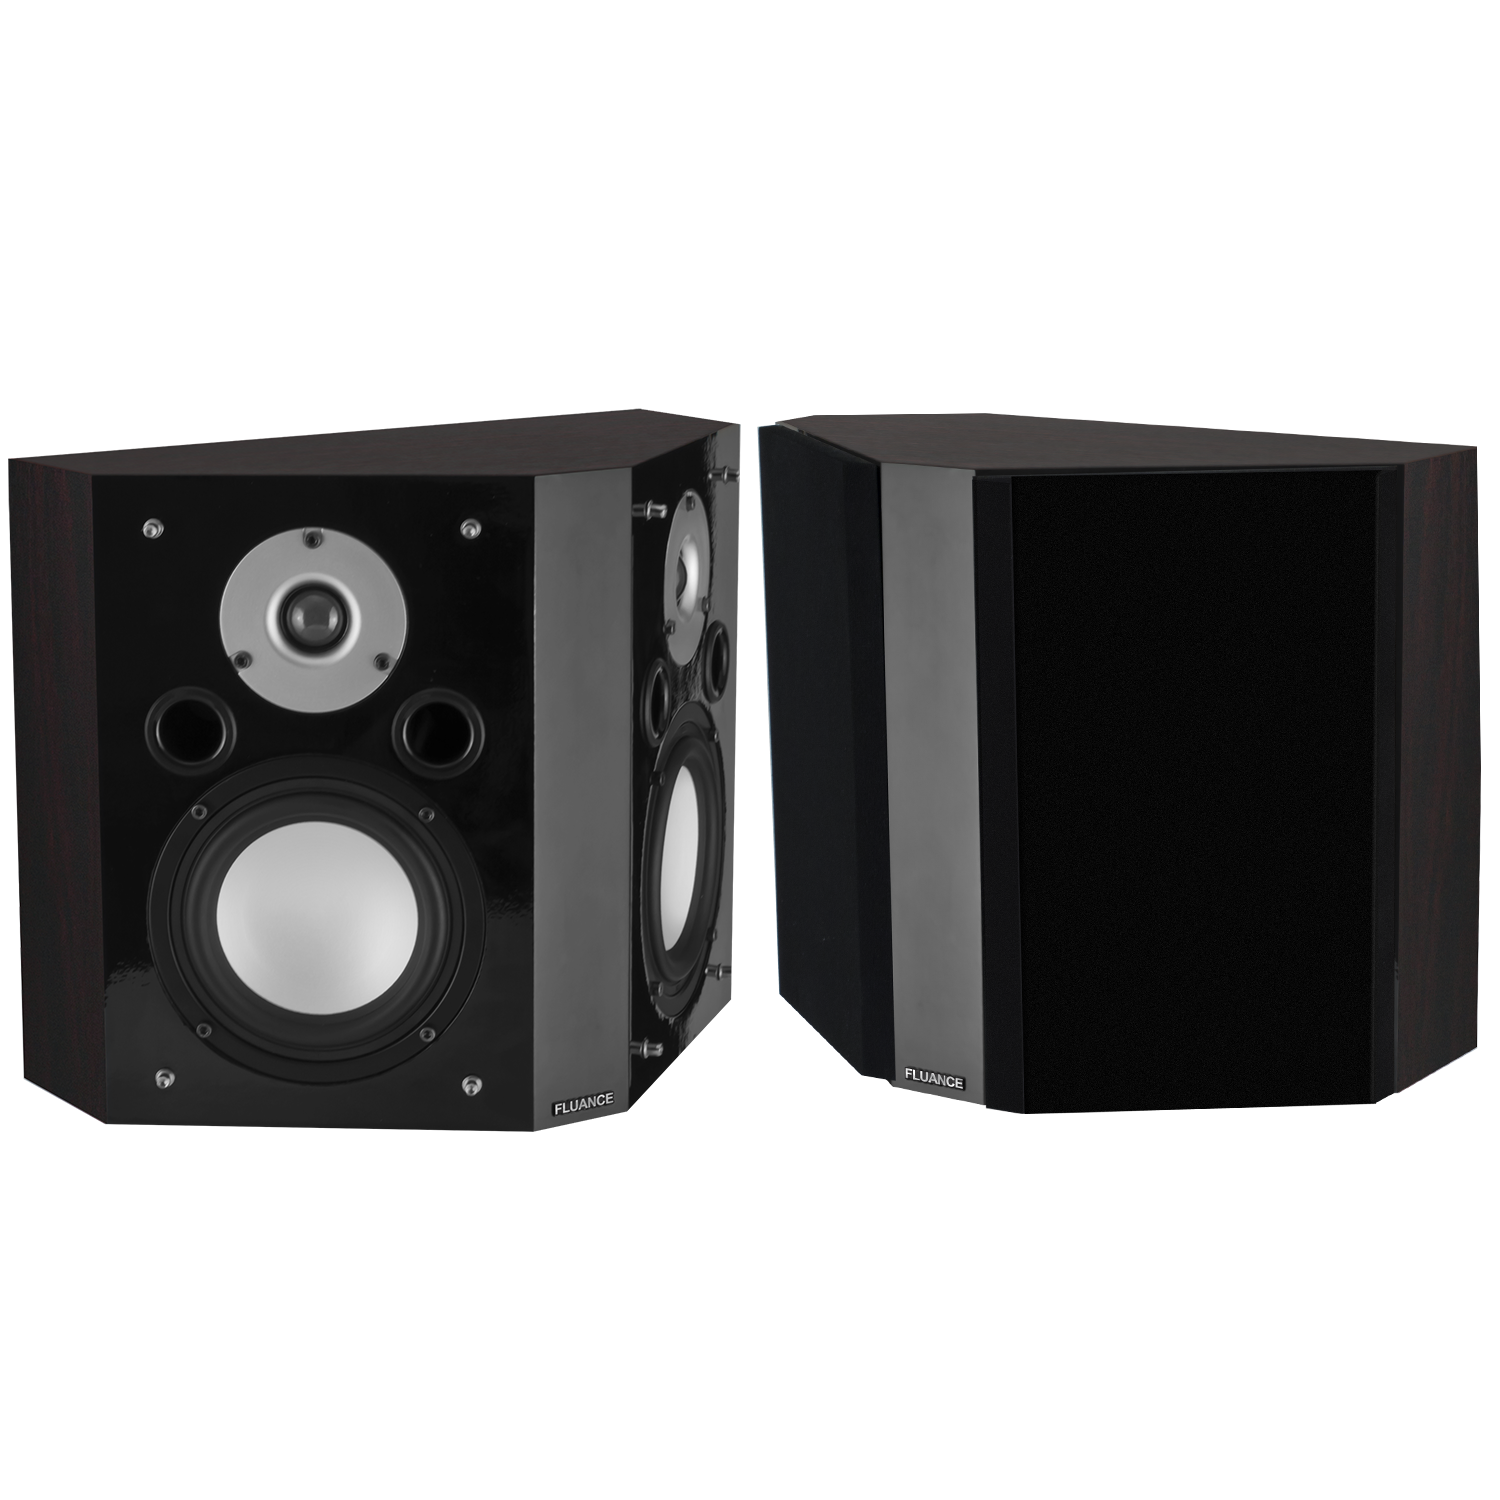 XLBP Wide Dispersion Bipolar Surround Sound Speakers - Dark Walnut (pair)